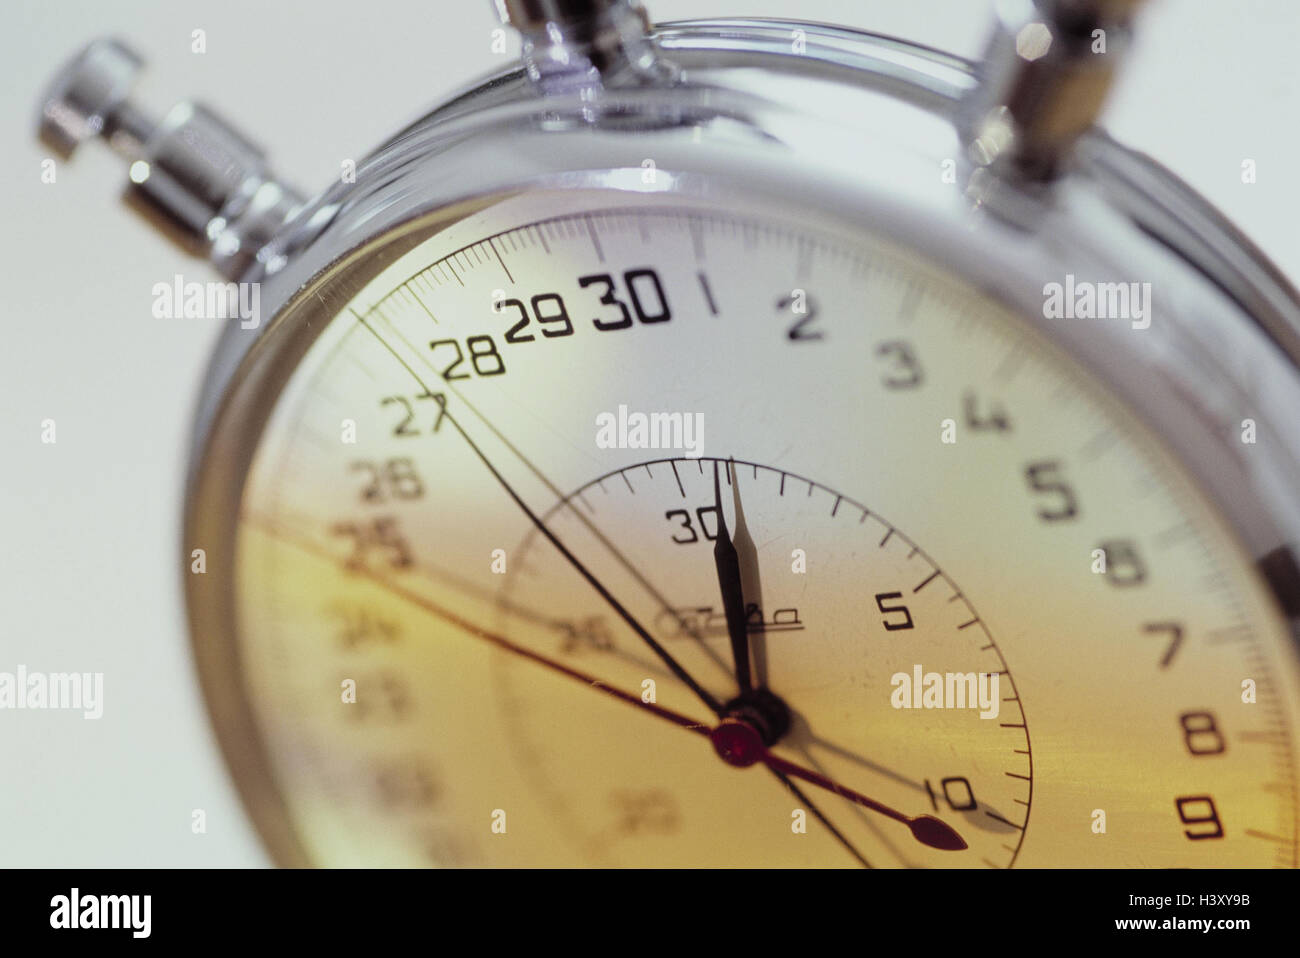 Stopwatch, detail, time measurement, clock, time, duration, capacity, measure, stop, speed, short-term measuring - Stock Image